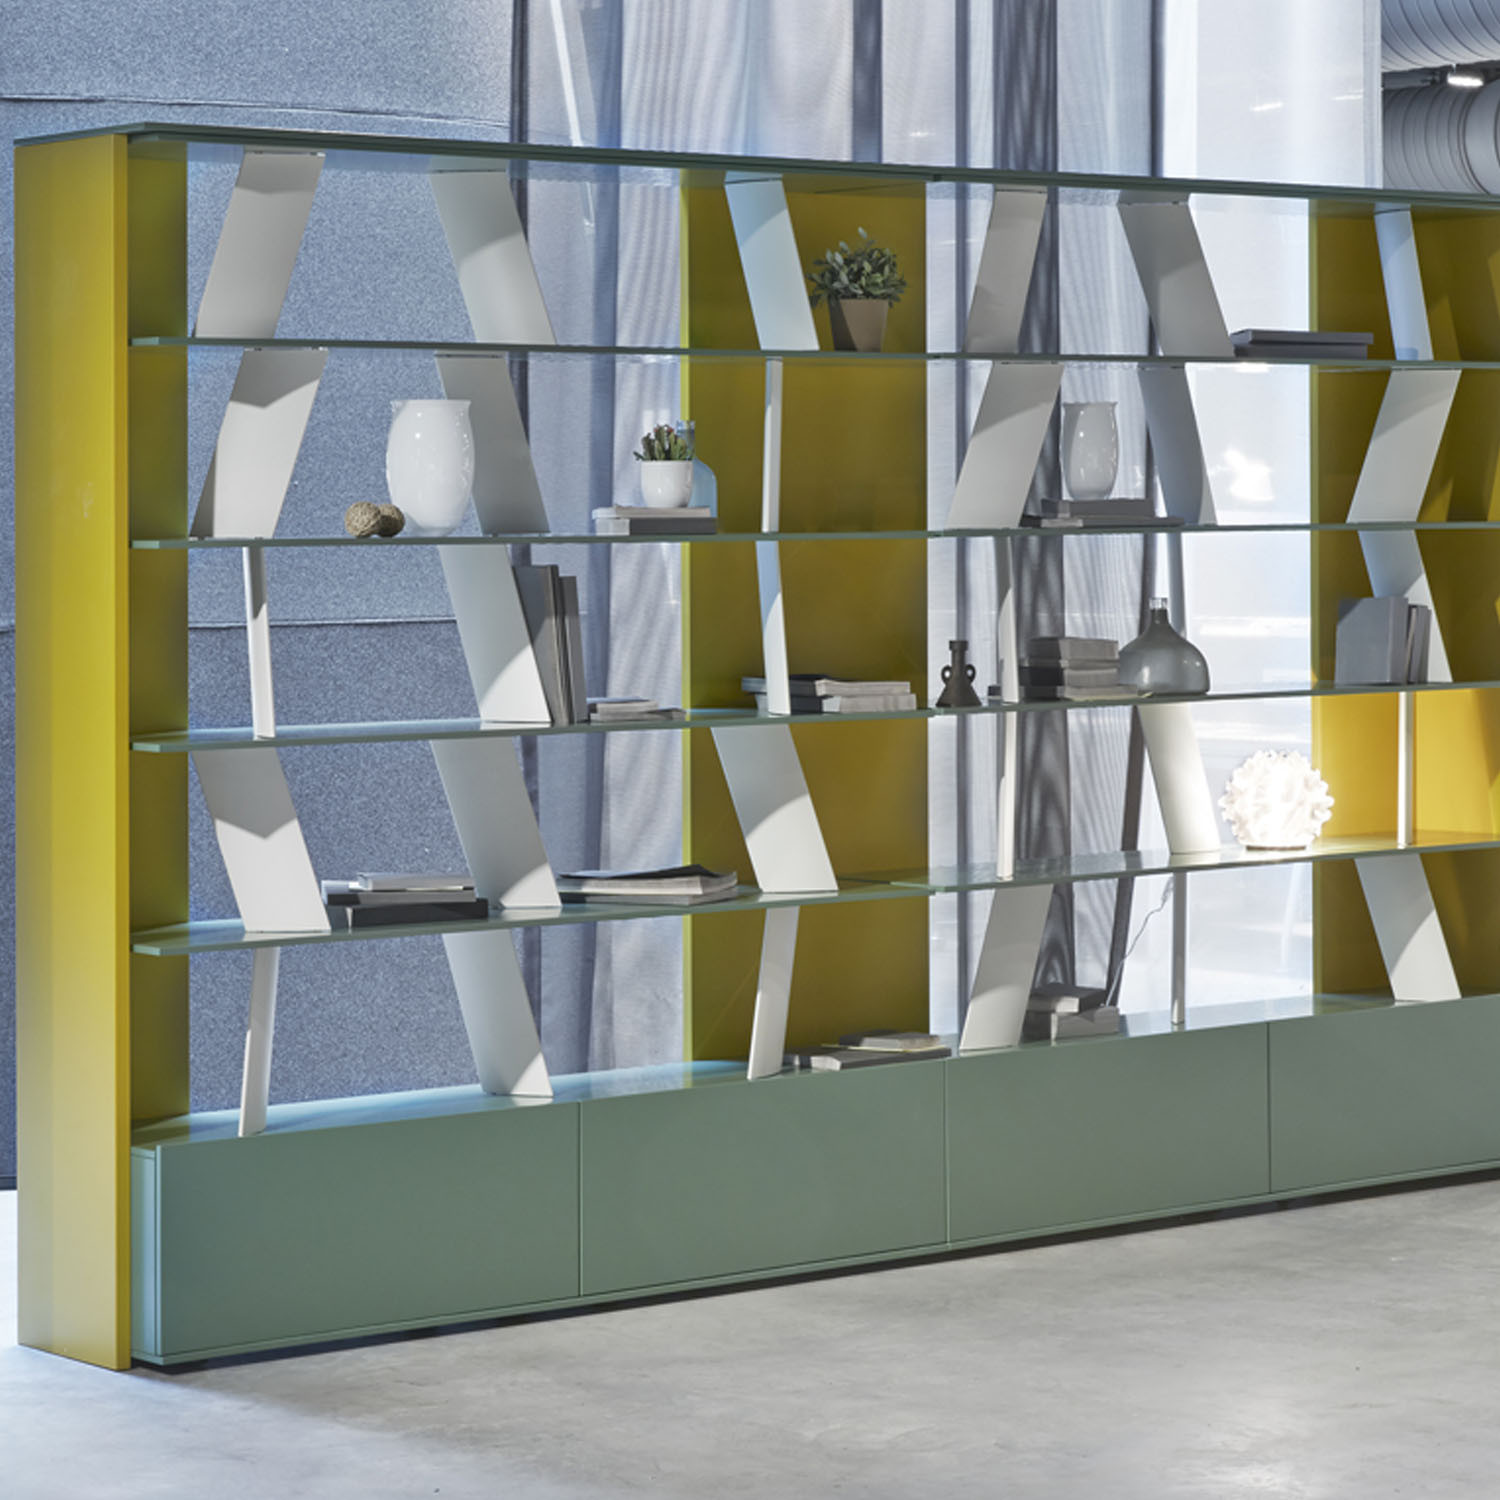 Vis Light Cabinet Storage by Koleksiyon